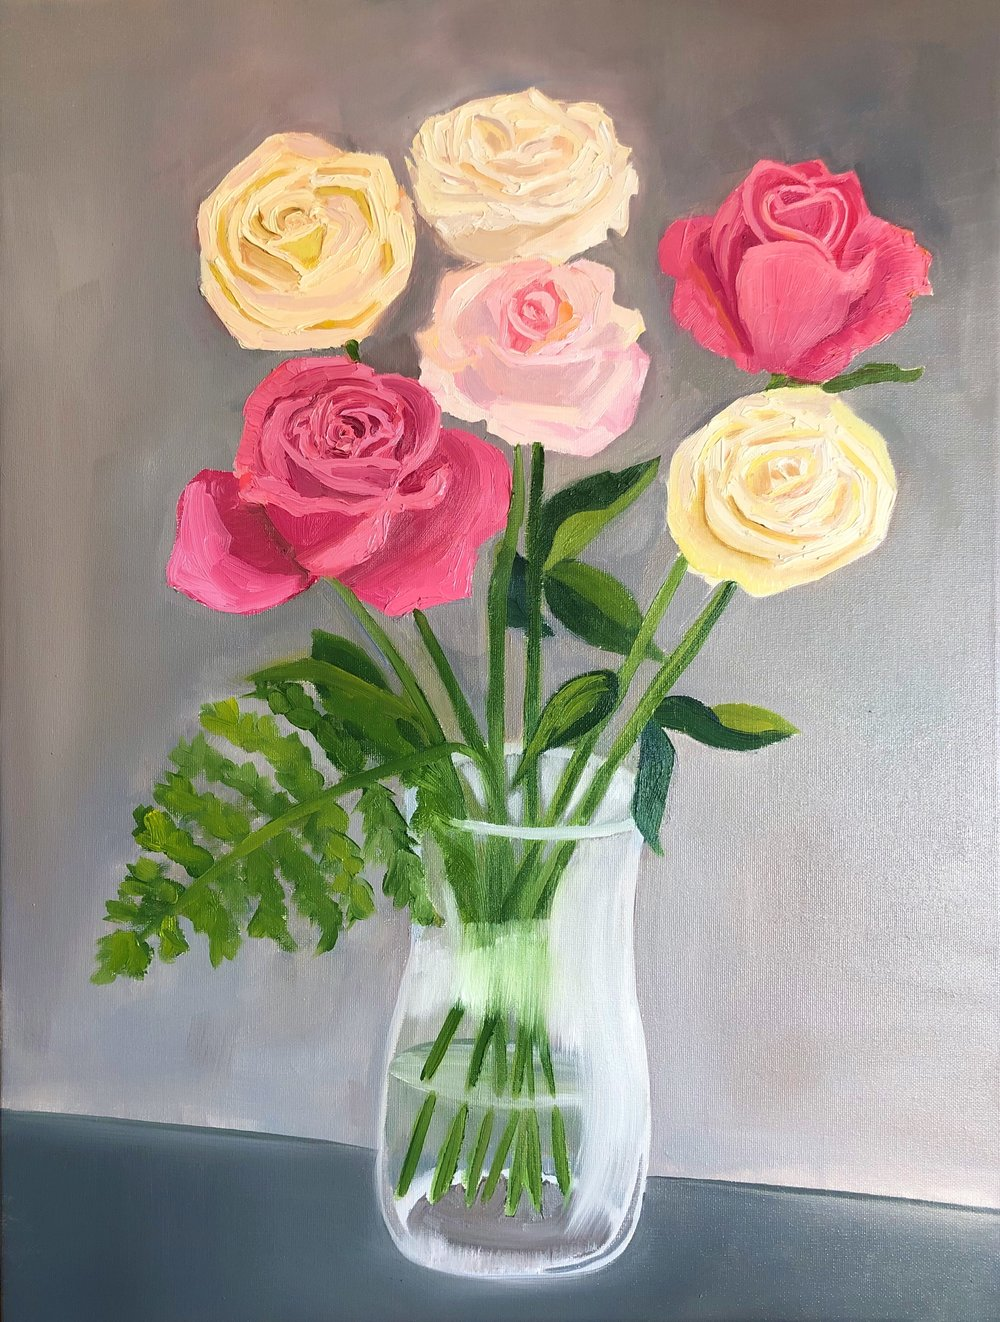 katrina-eugenia-live-art-live-painting-nyc-artist-oil-painting-philosophy-love-philosophy-skincare-pure-grace-pure-grace-nude-rose-amazing-grace-amazing-grace-ballet-rose-life-in-pink.JPG